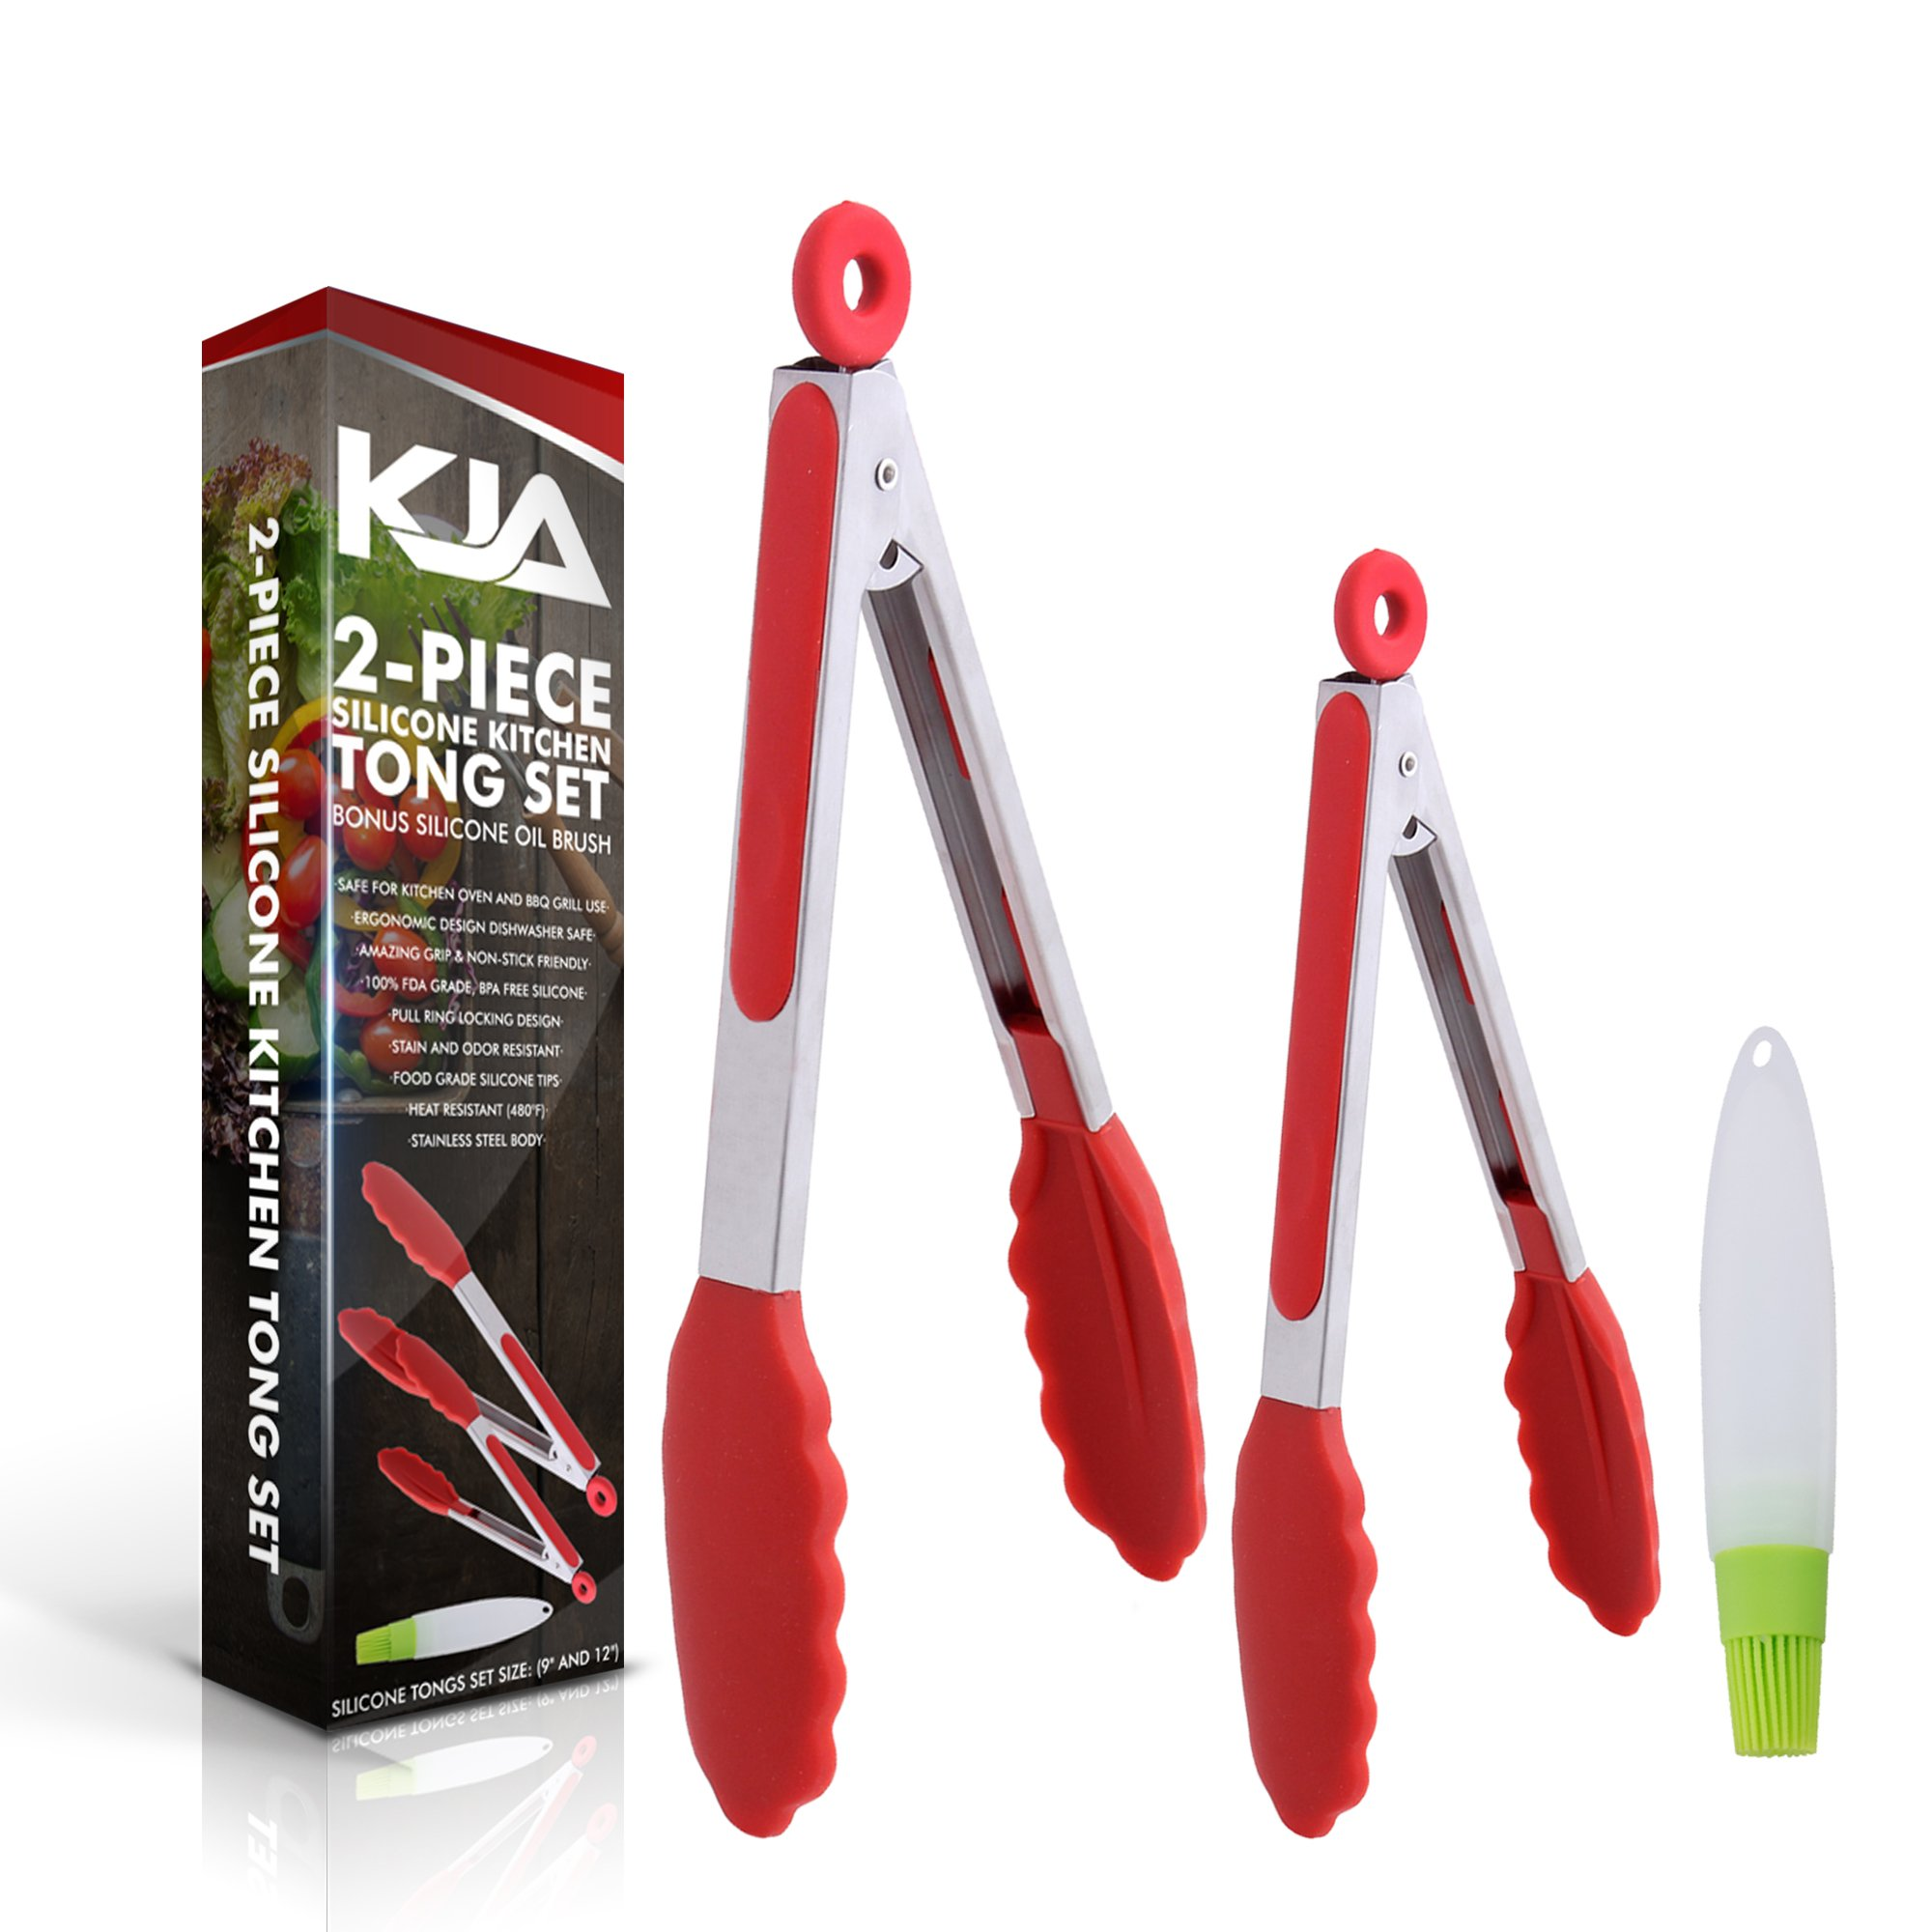 KJA Premium Kitchen Tongs: Set Of 2 (9 and 12 inch) Food Tongs Made With Heat Resistant Silicone – Stainless Steel Utensil For Cooking, BBQ, Grilling, Salad, Fish & Serving – Free Silicone Oil Brush